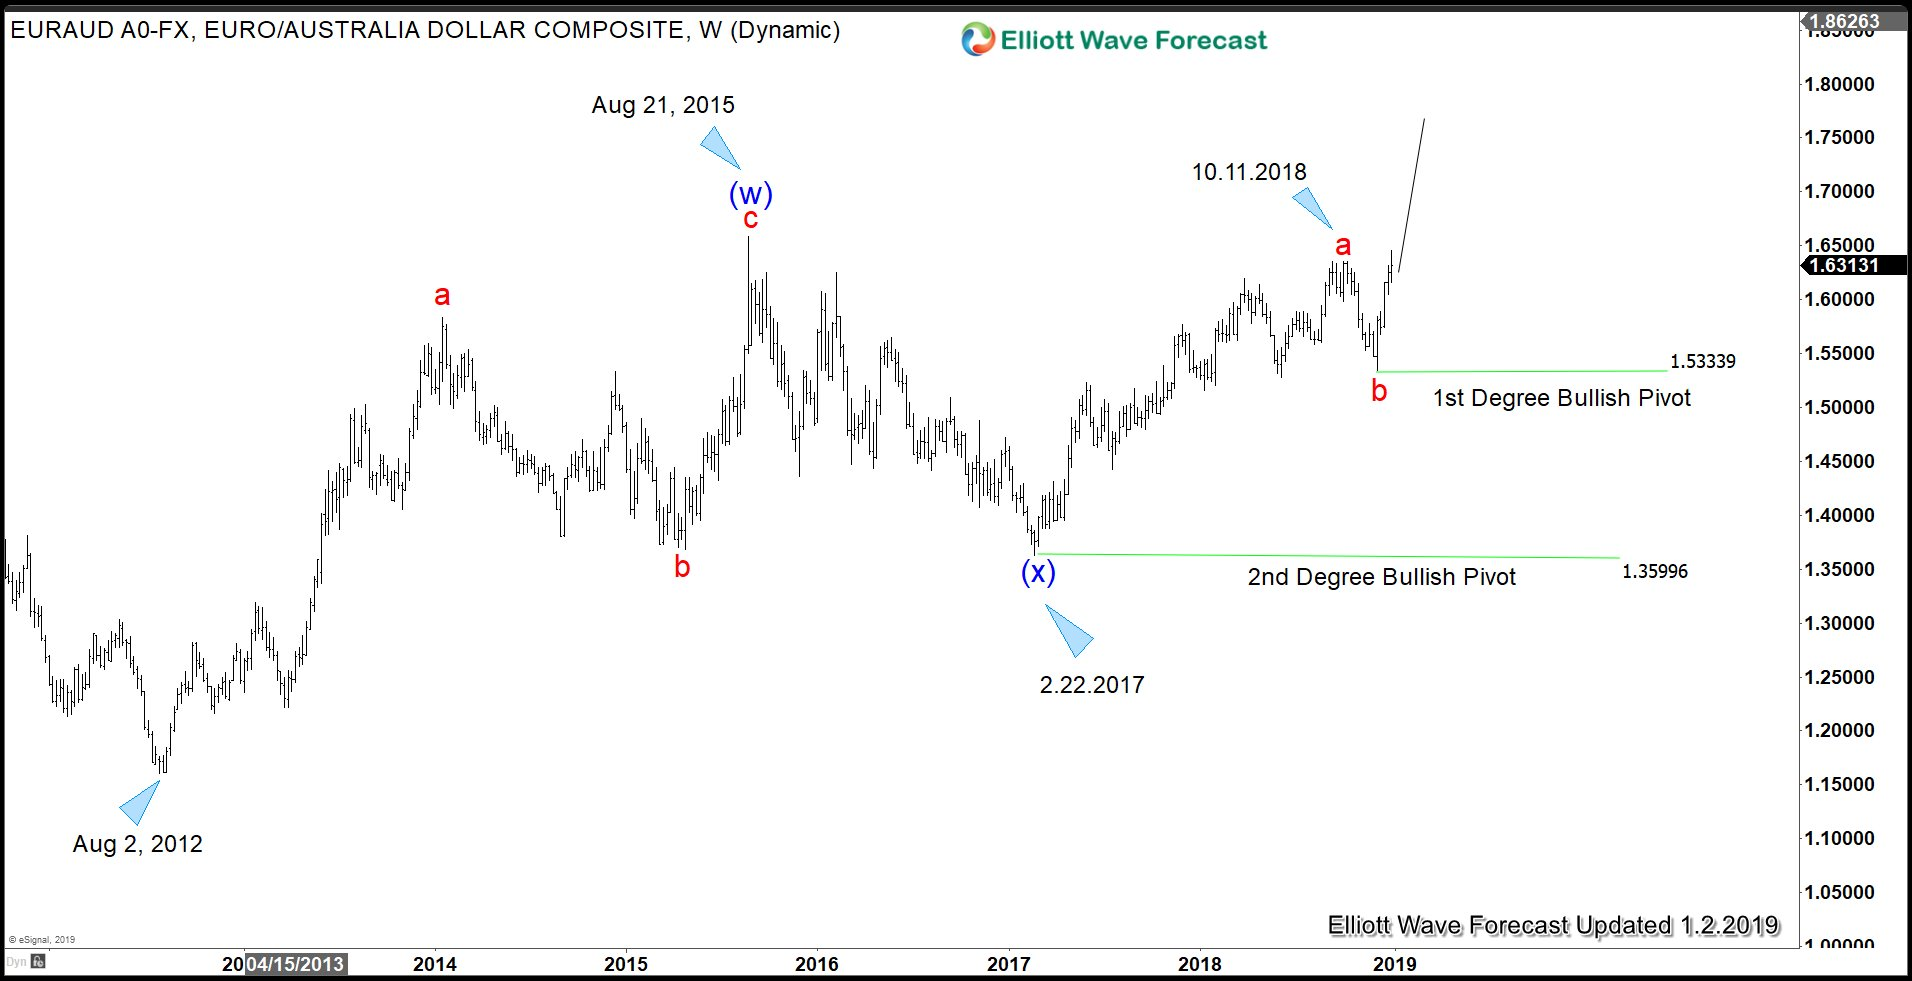 Bullish Technical outlook for EURAUD can support Euro dollar